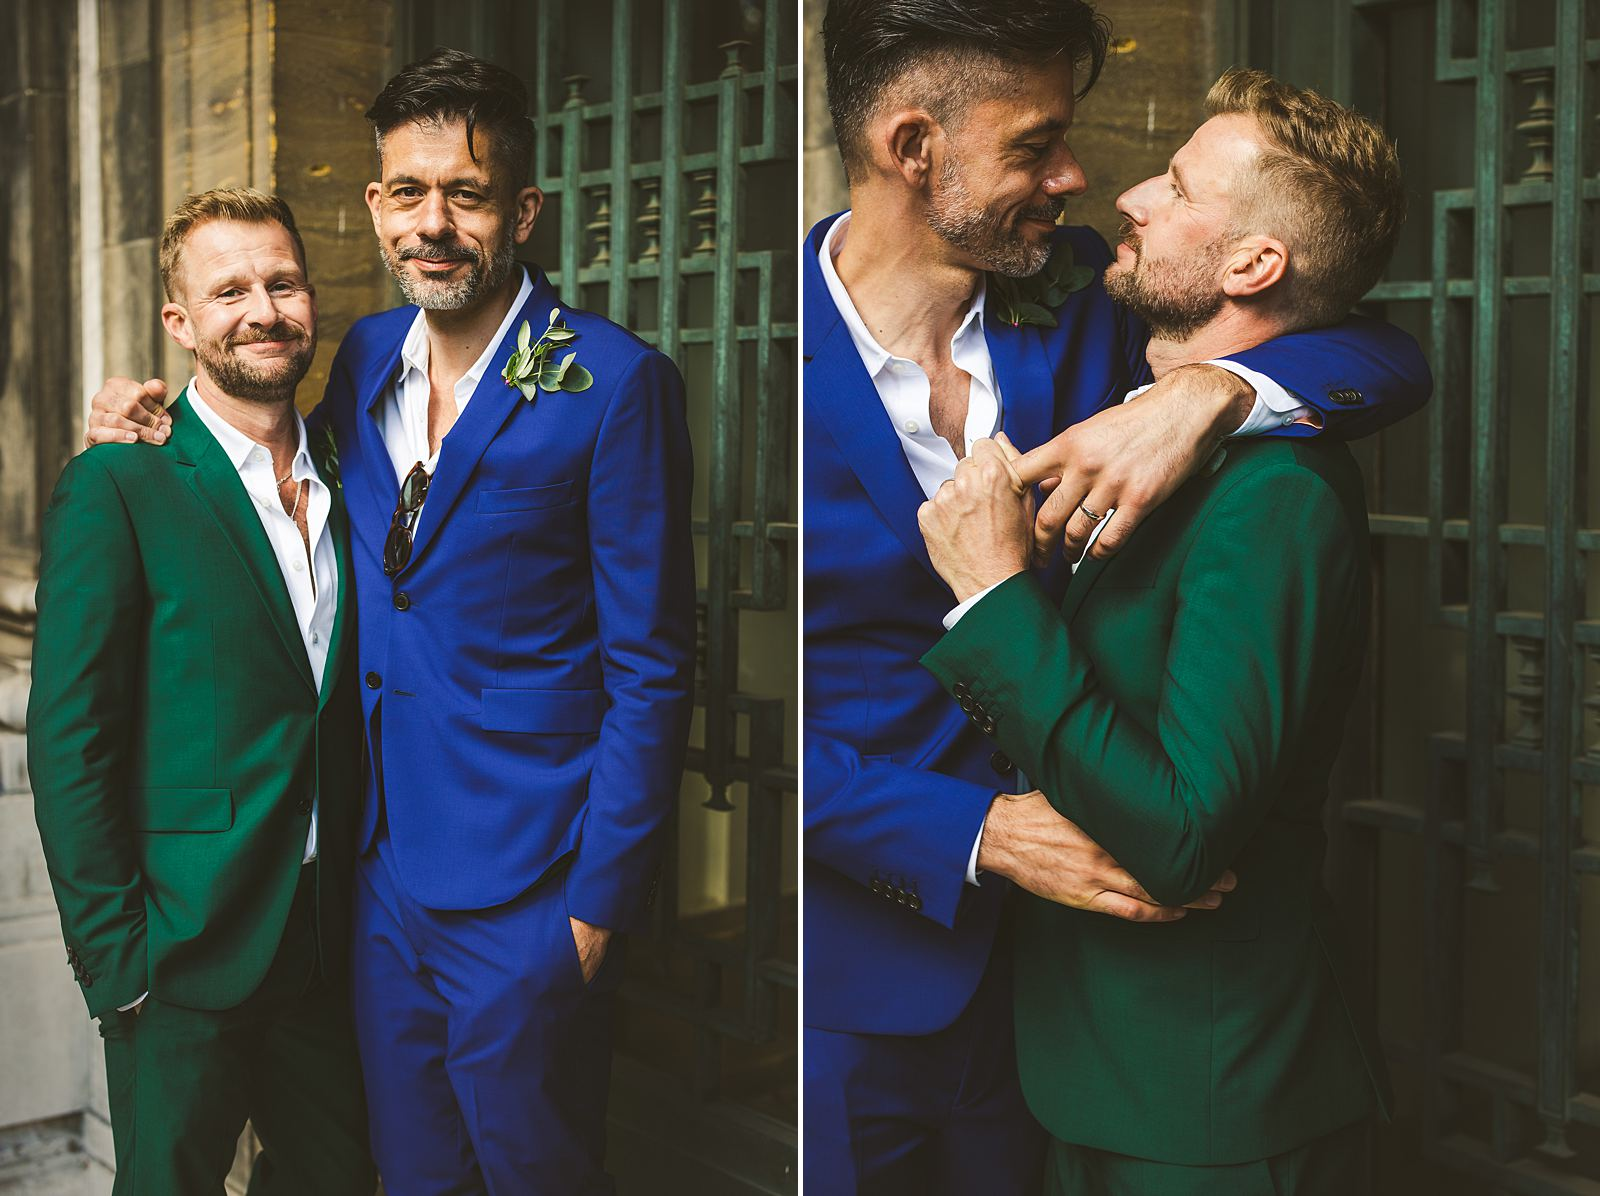 Gay wedding portraits London